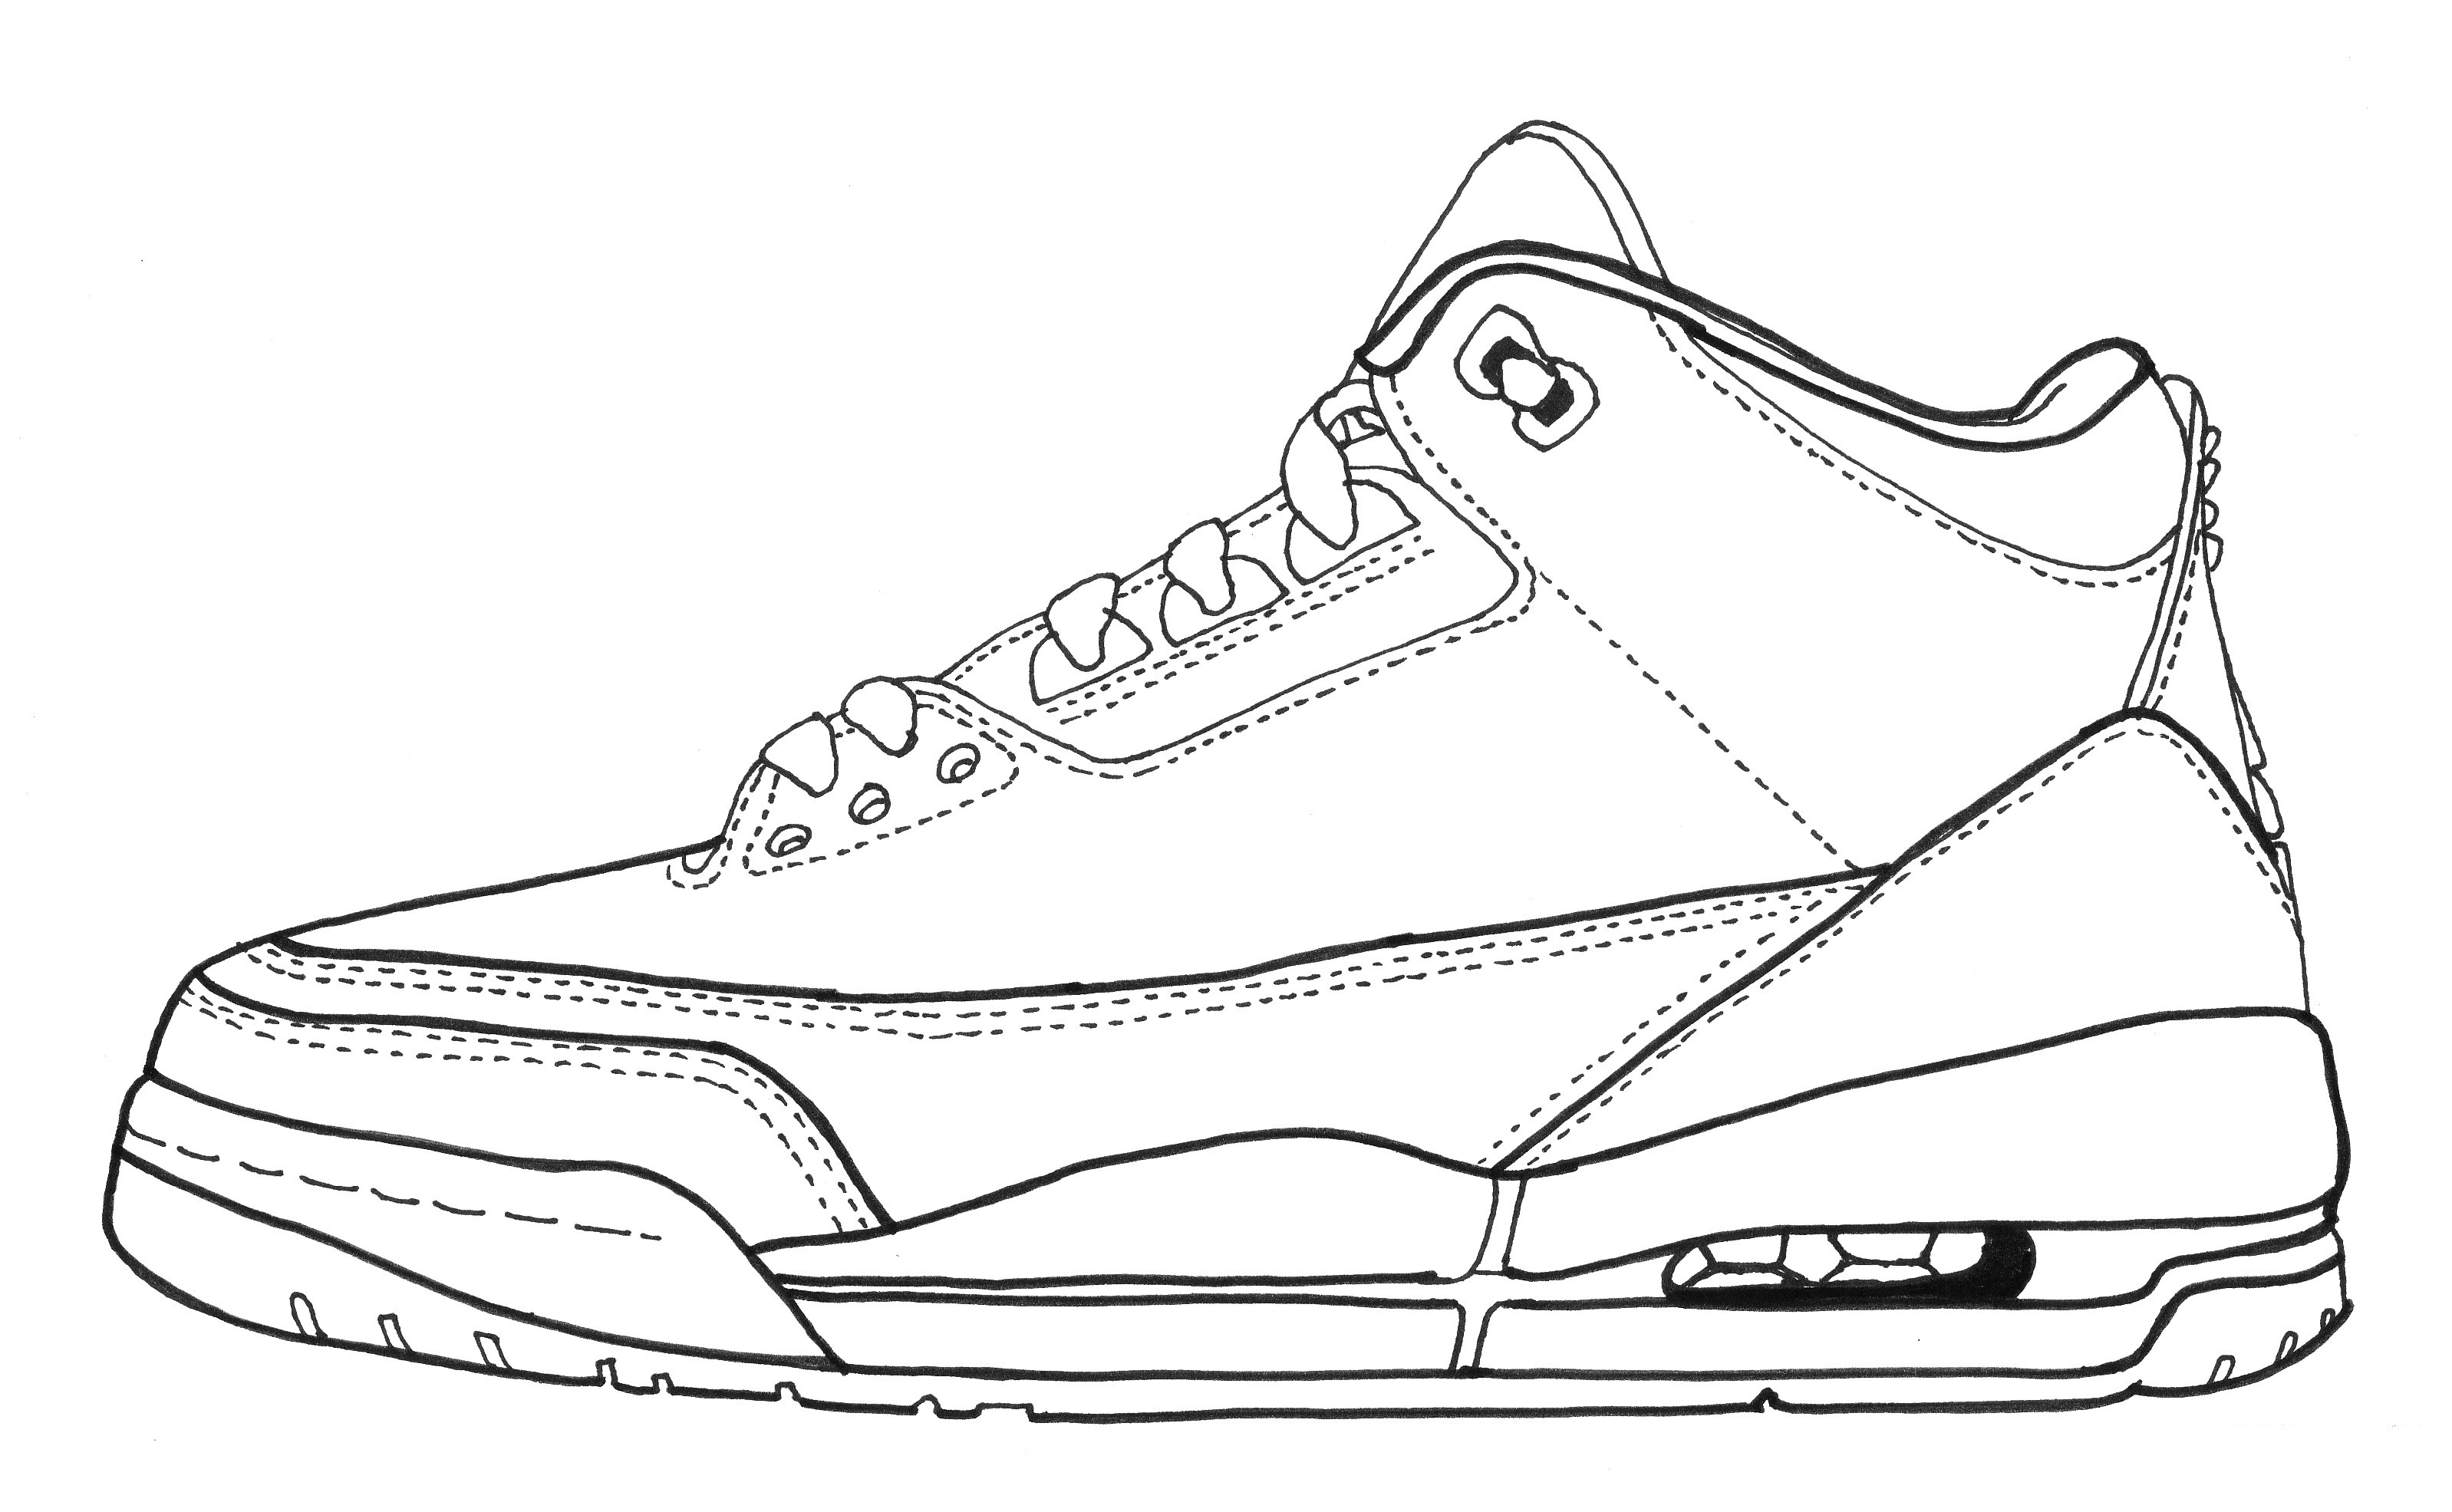 how to draw a simple shoe running shoes clipart running shoes drawing easy free draw shoe a how to simple